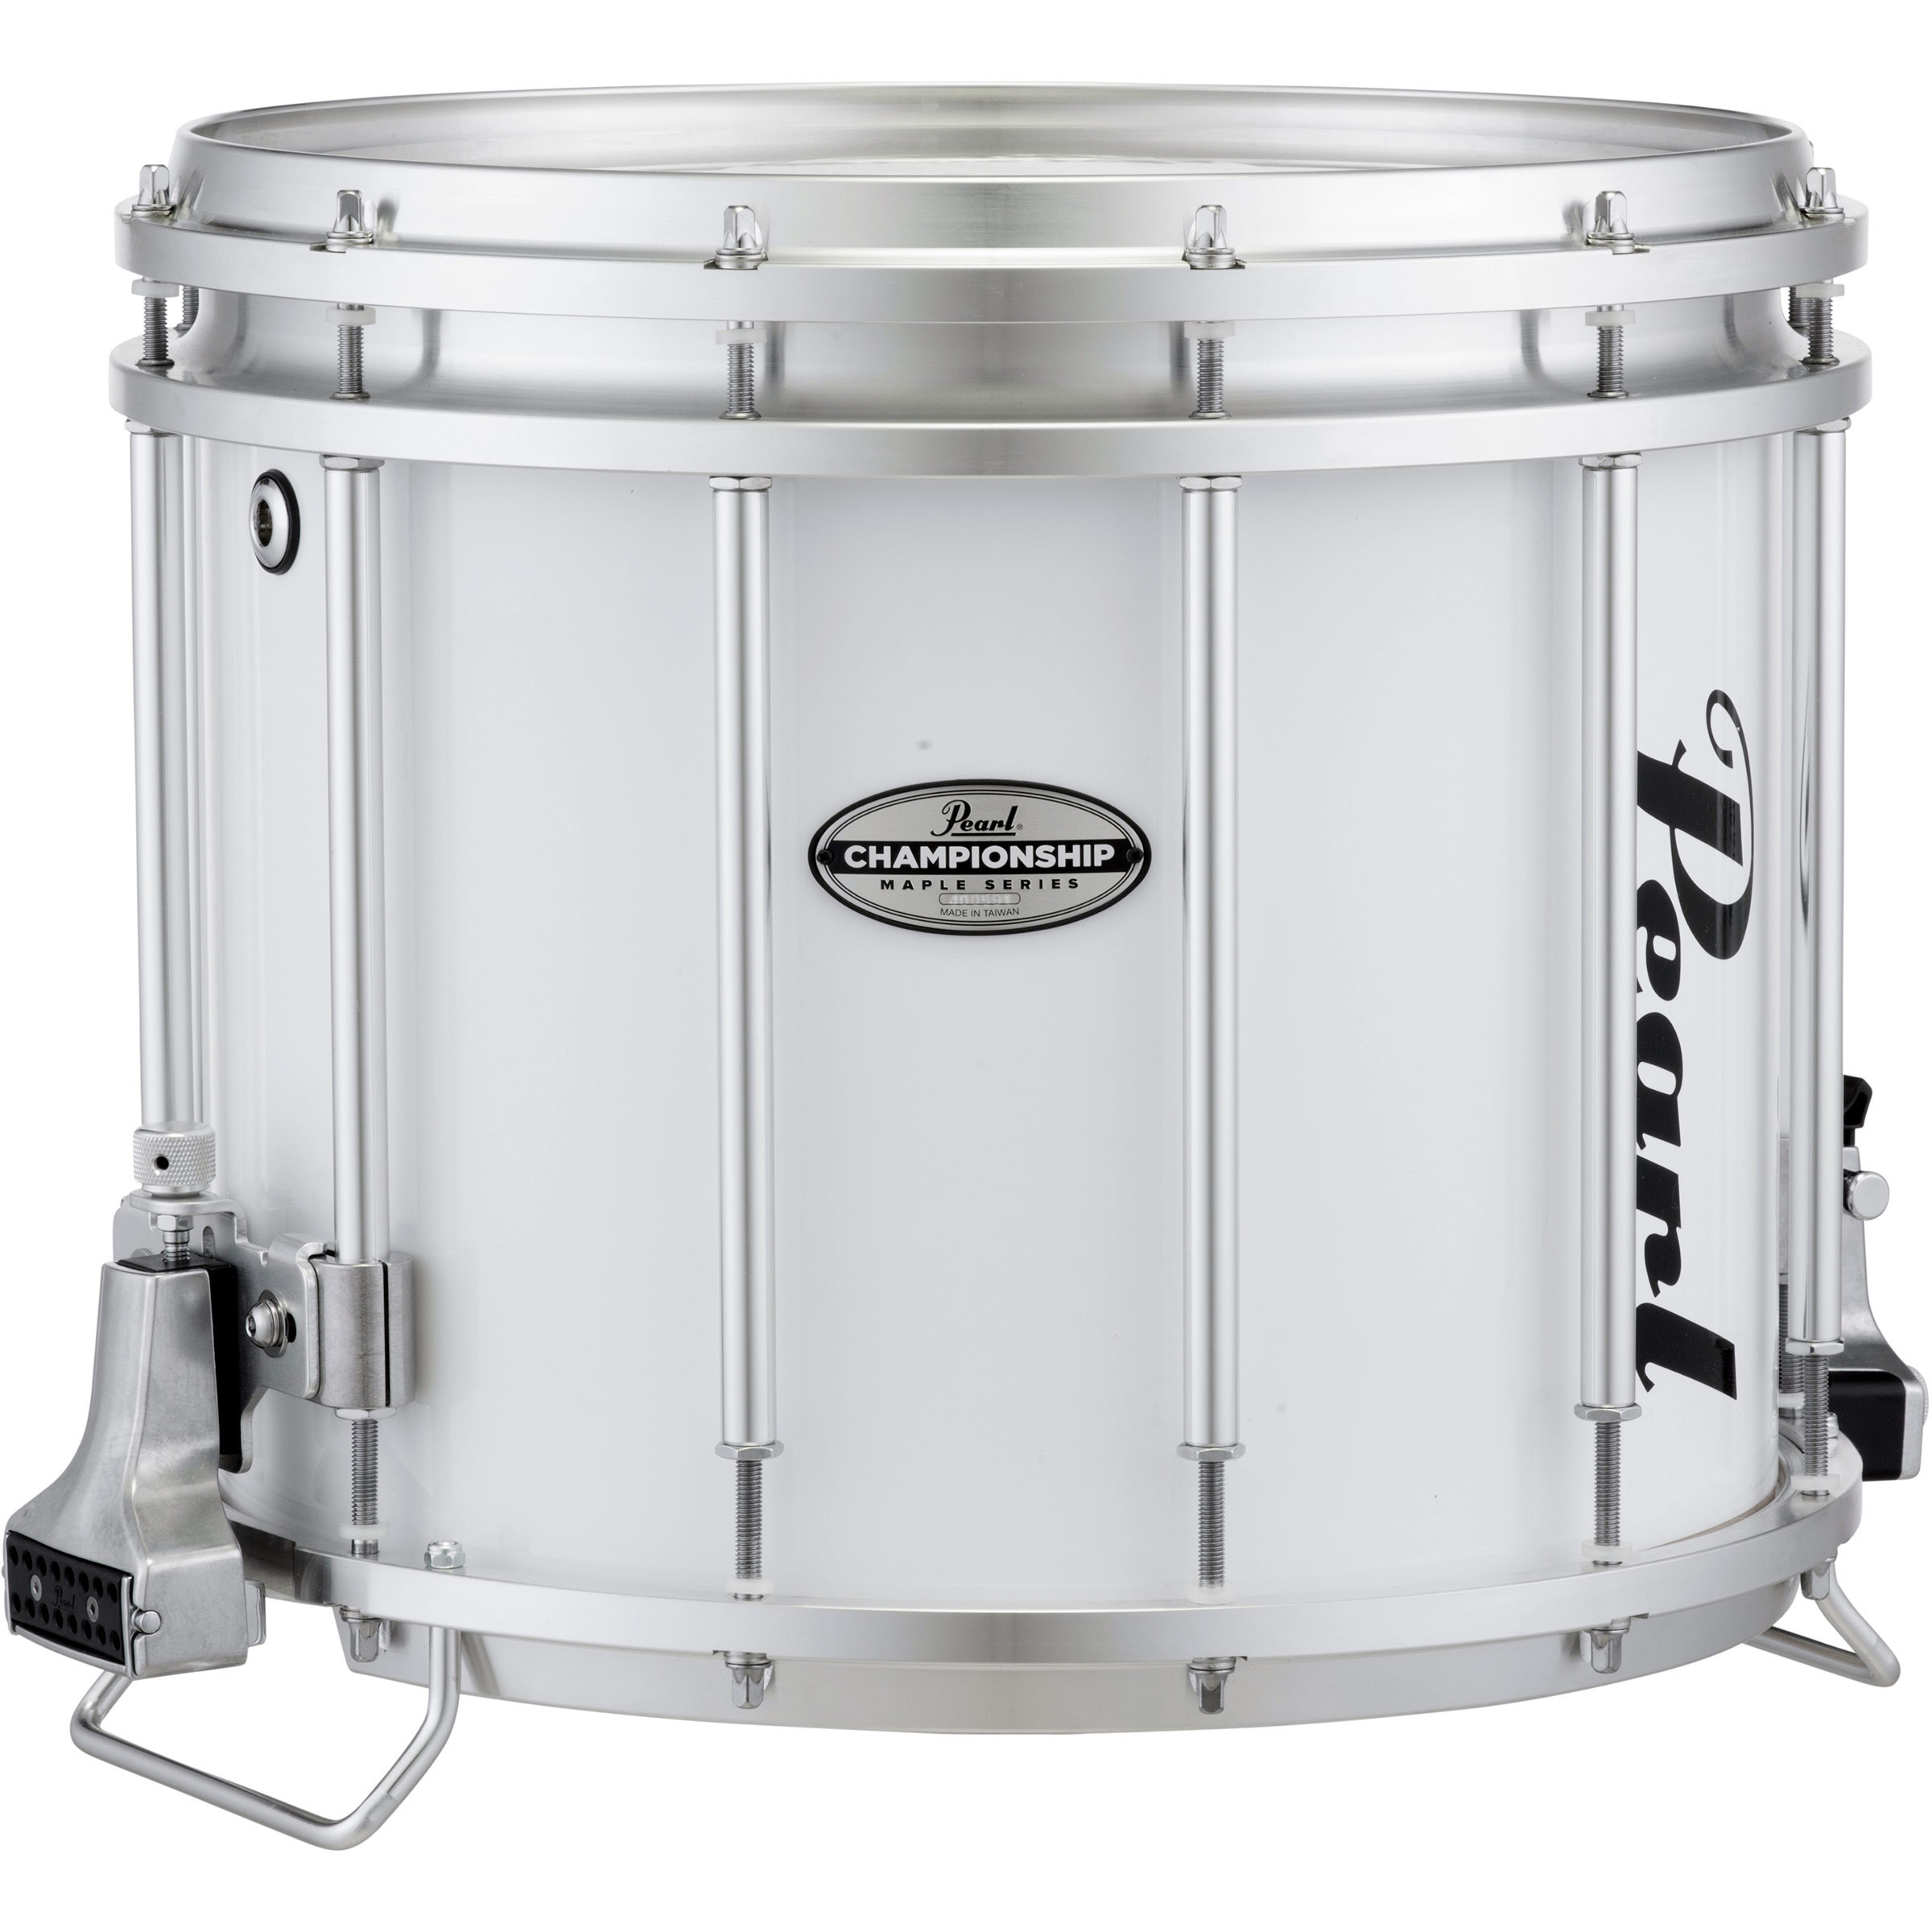 Pearl Championship Maple Series FFXM Marching Snare Drums